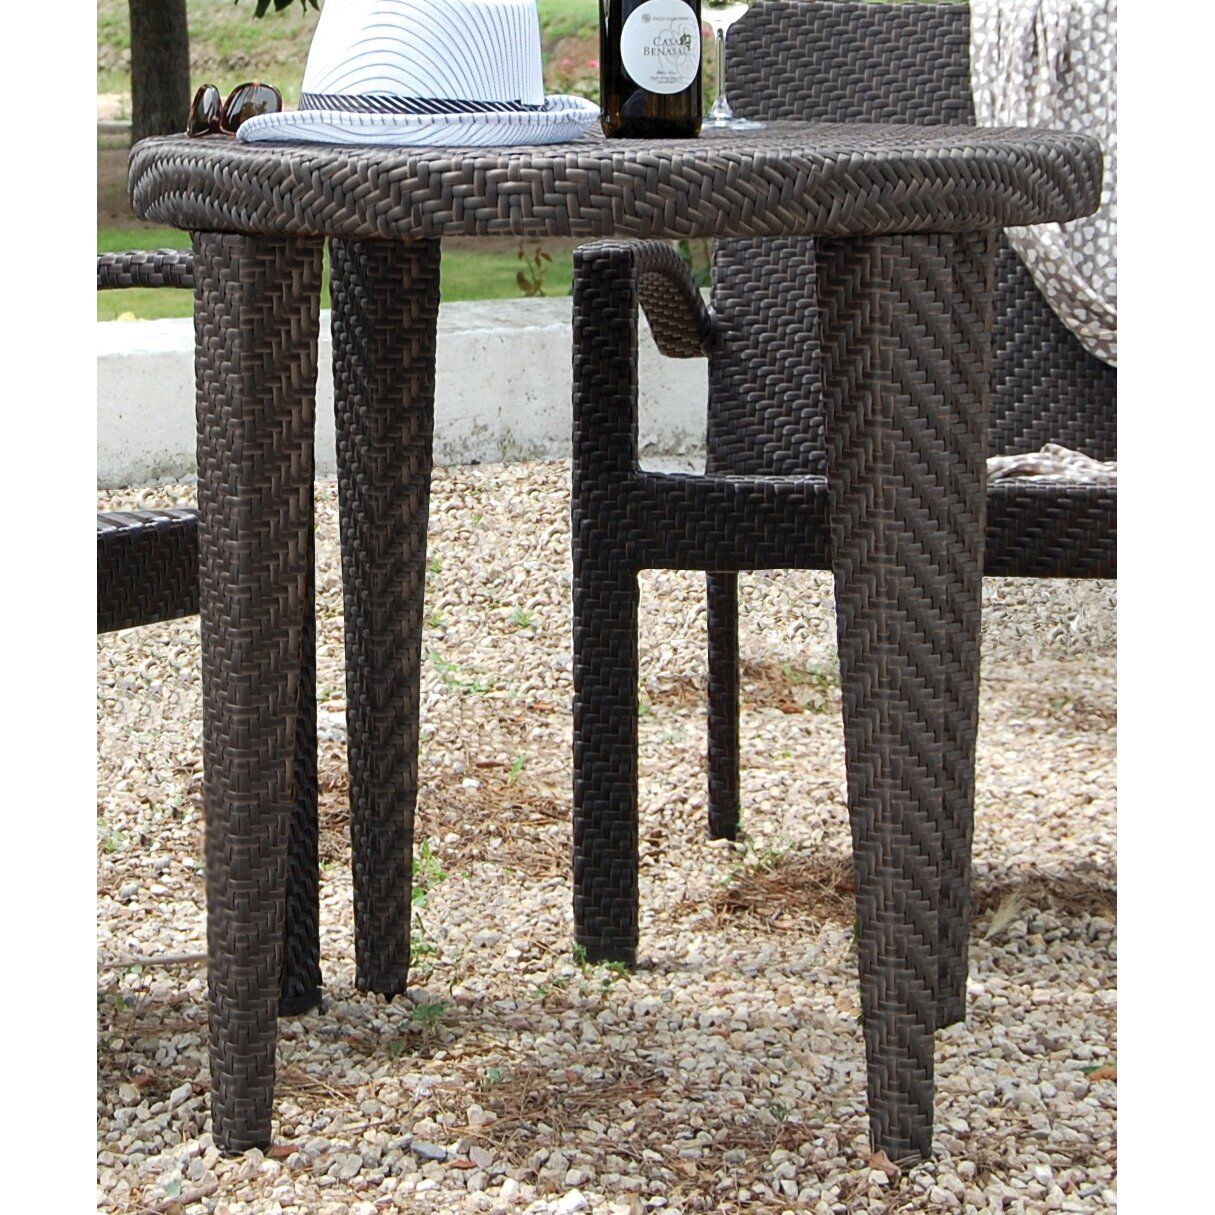 Lovely Hospitality Rattan Outdoor Furniture